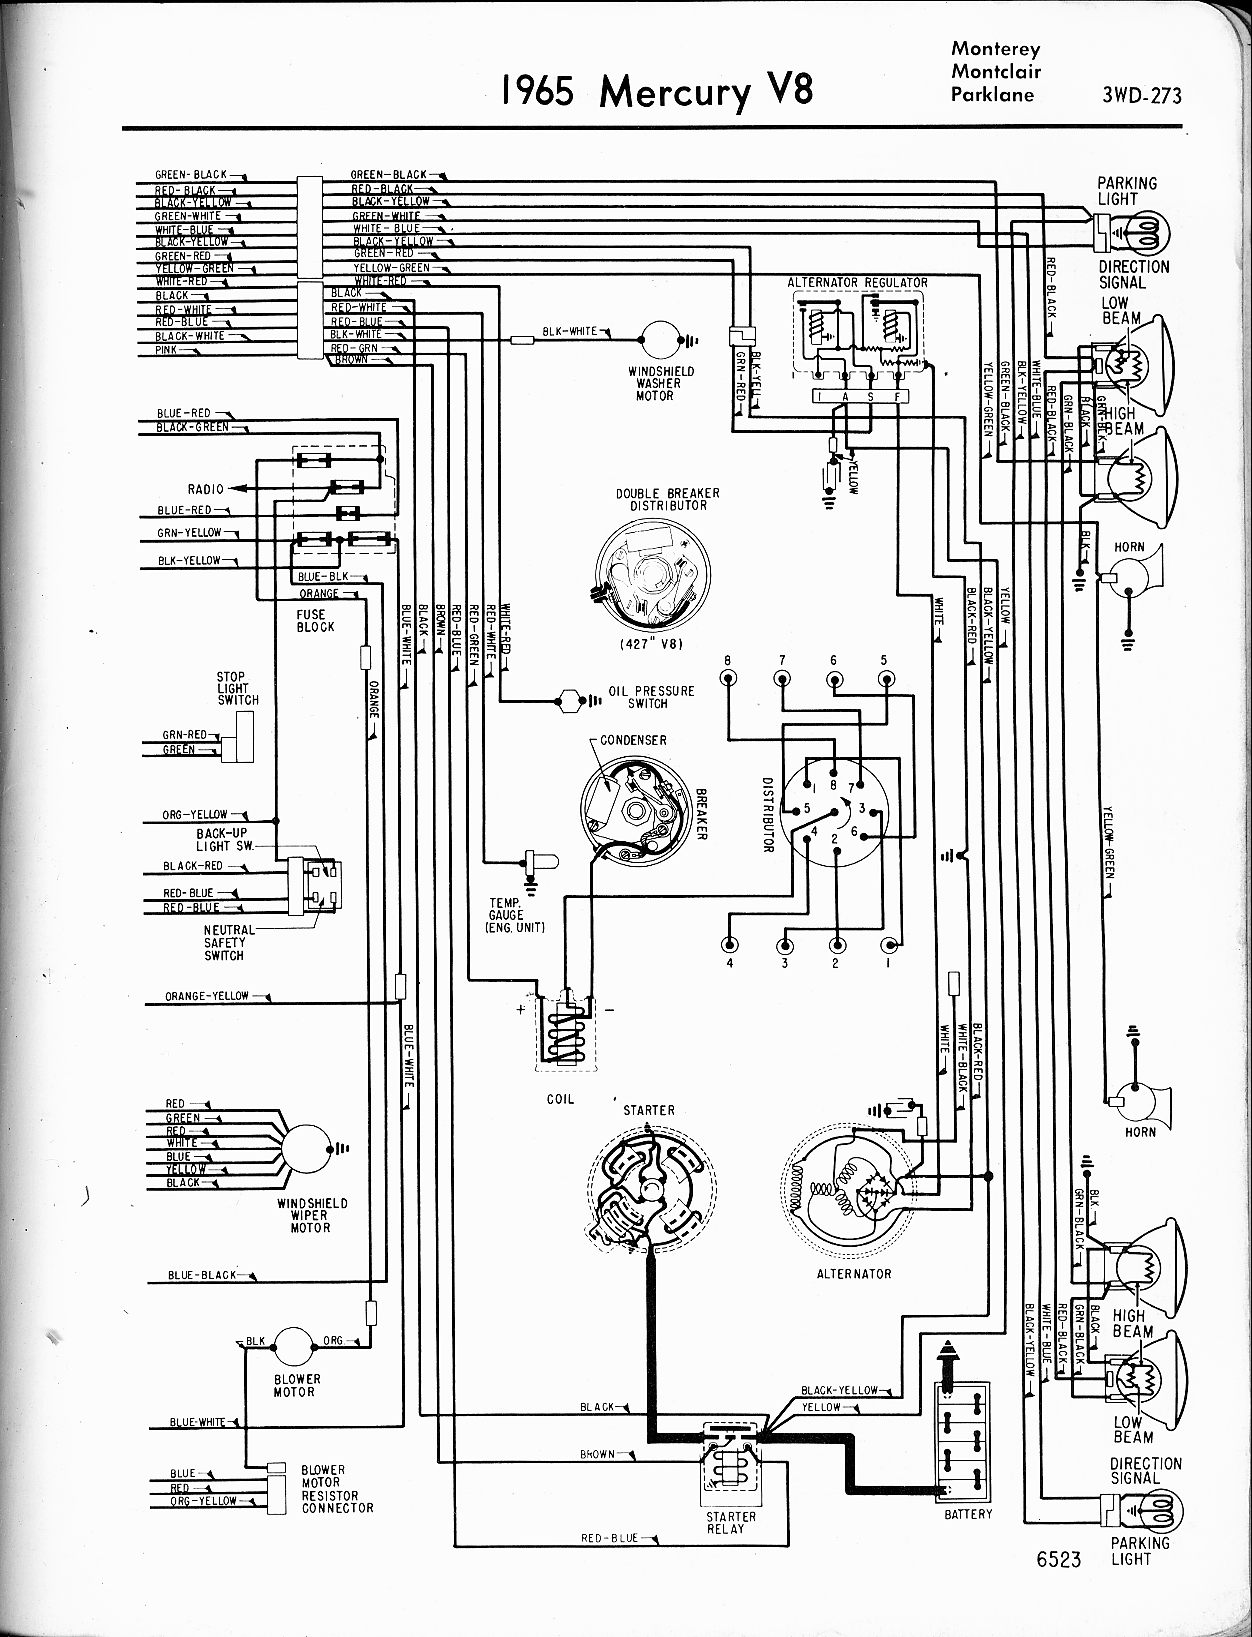 MWire5765 273 mercury wiring diagrams the old car manual project Simple Control Diagram at crackthecode.co